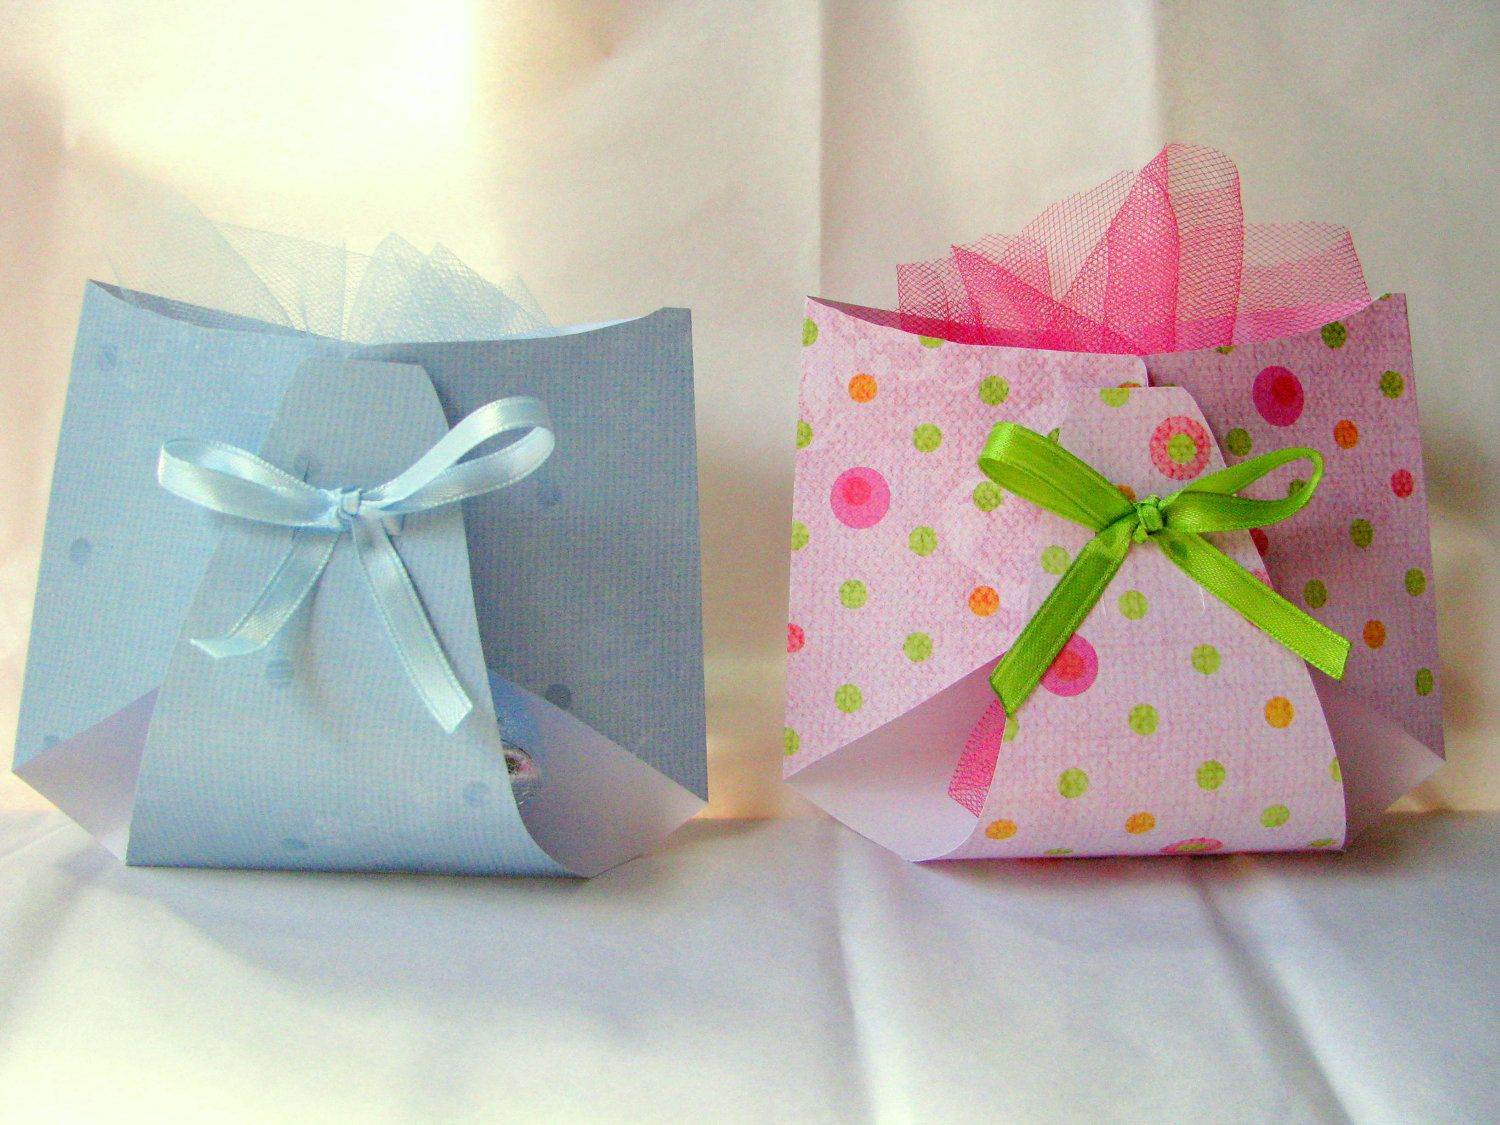 For Game Gifts Instead Of Bags Wrap With Tissue Tie With Tulle On